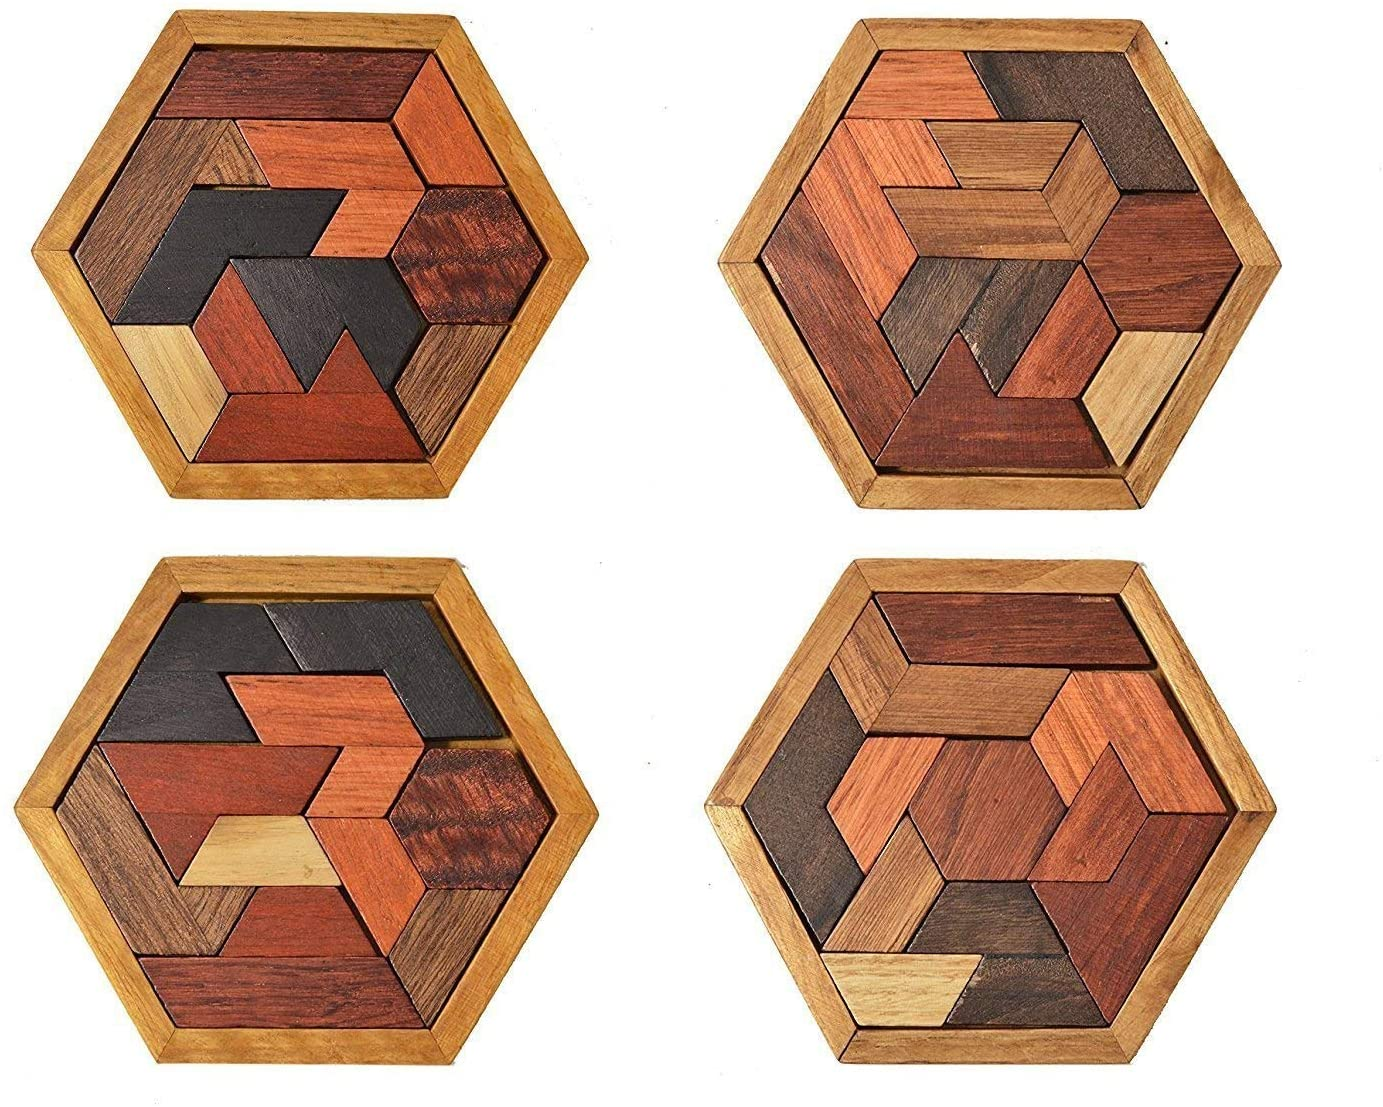 Laser Cut Wooden Hexagon Puzzle Game For Kids Educational Gift Free Vector